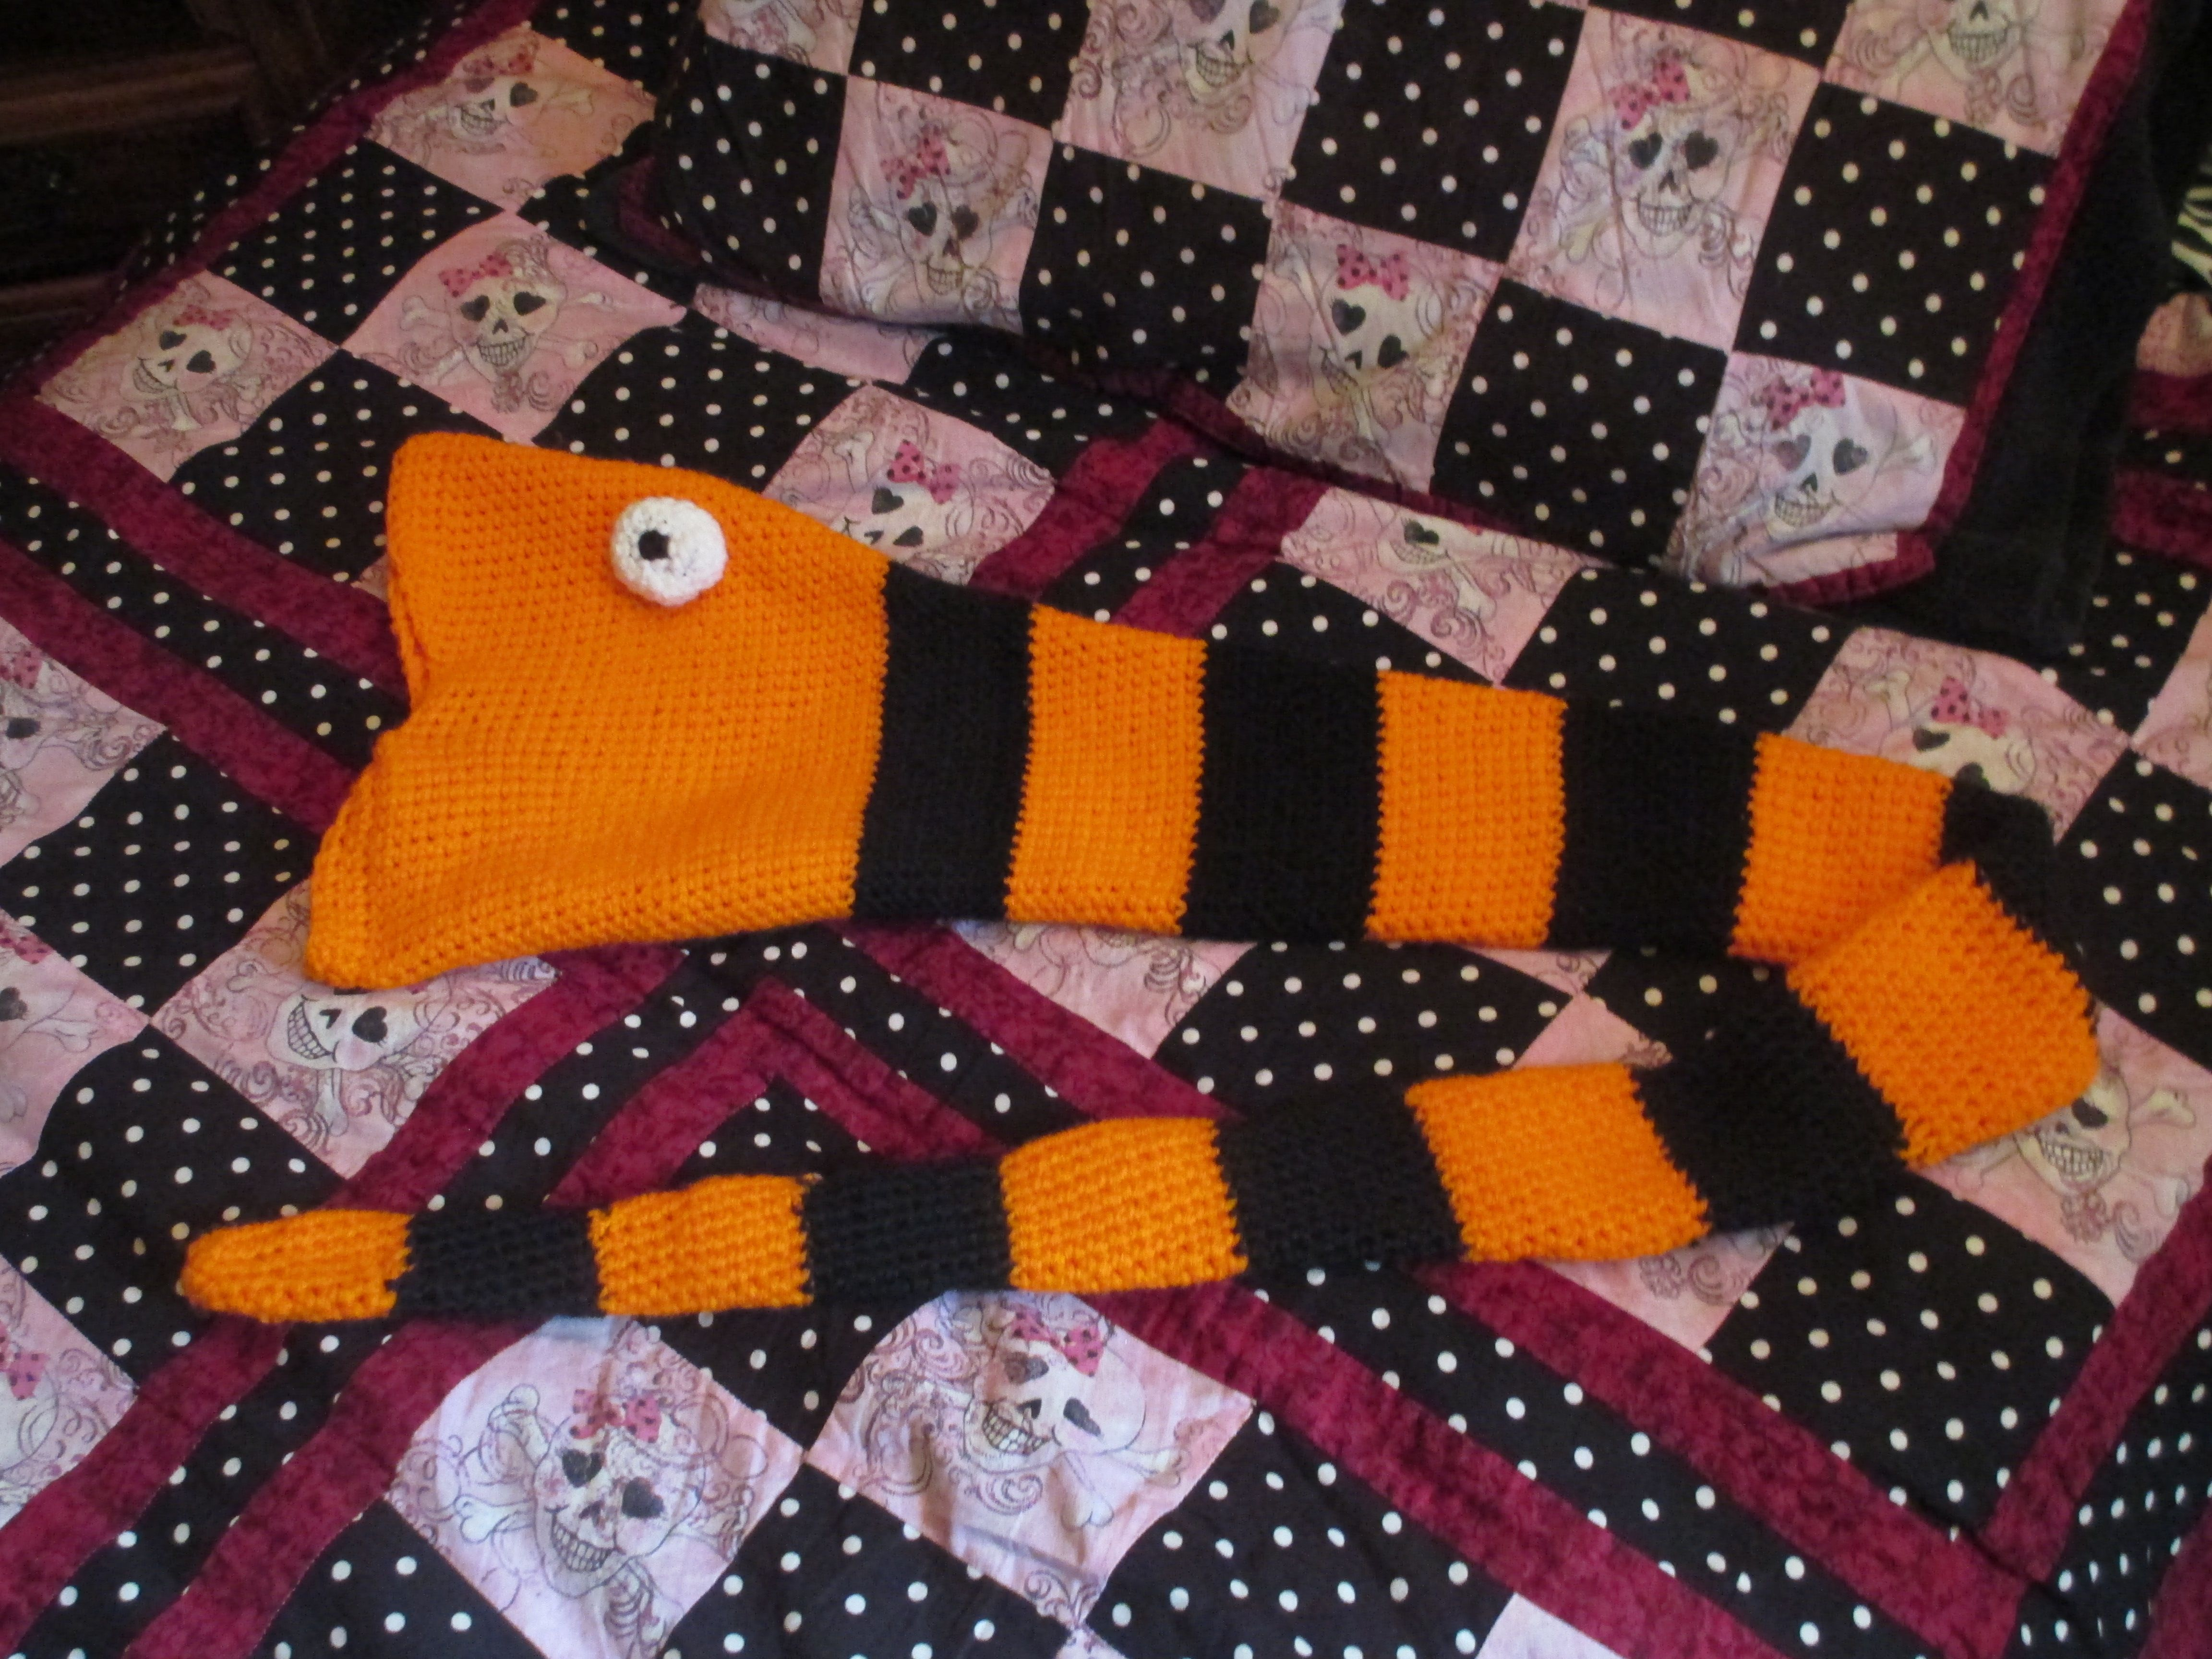 Snake hat/scarf inspired by The Nightmare Before Christmas. For sale ...